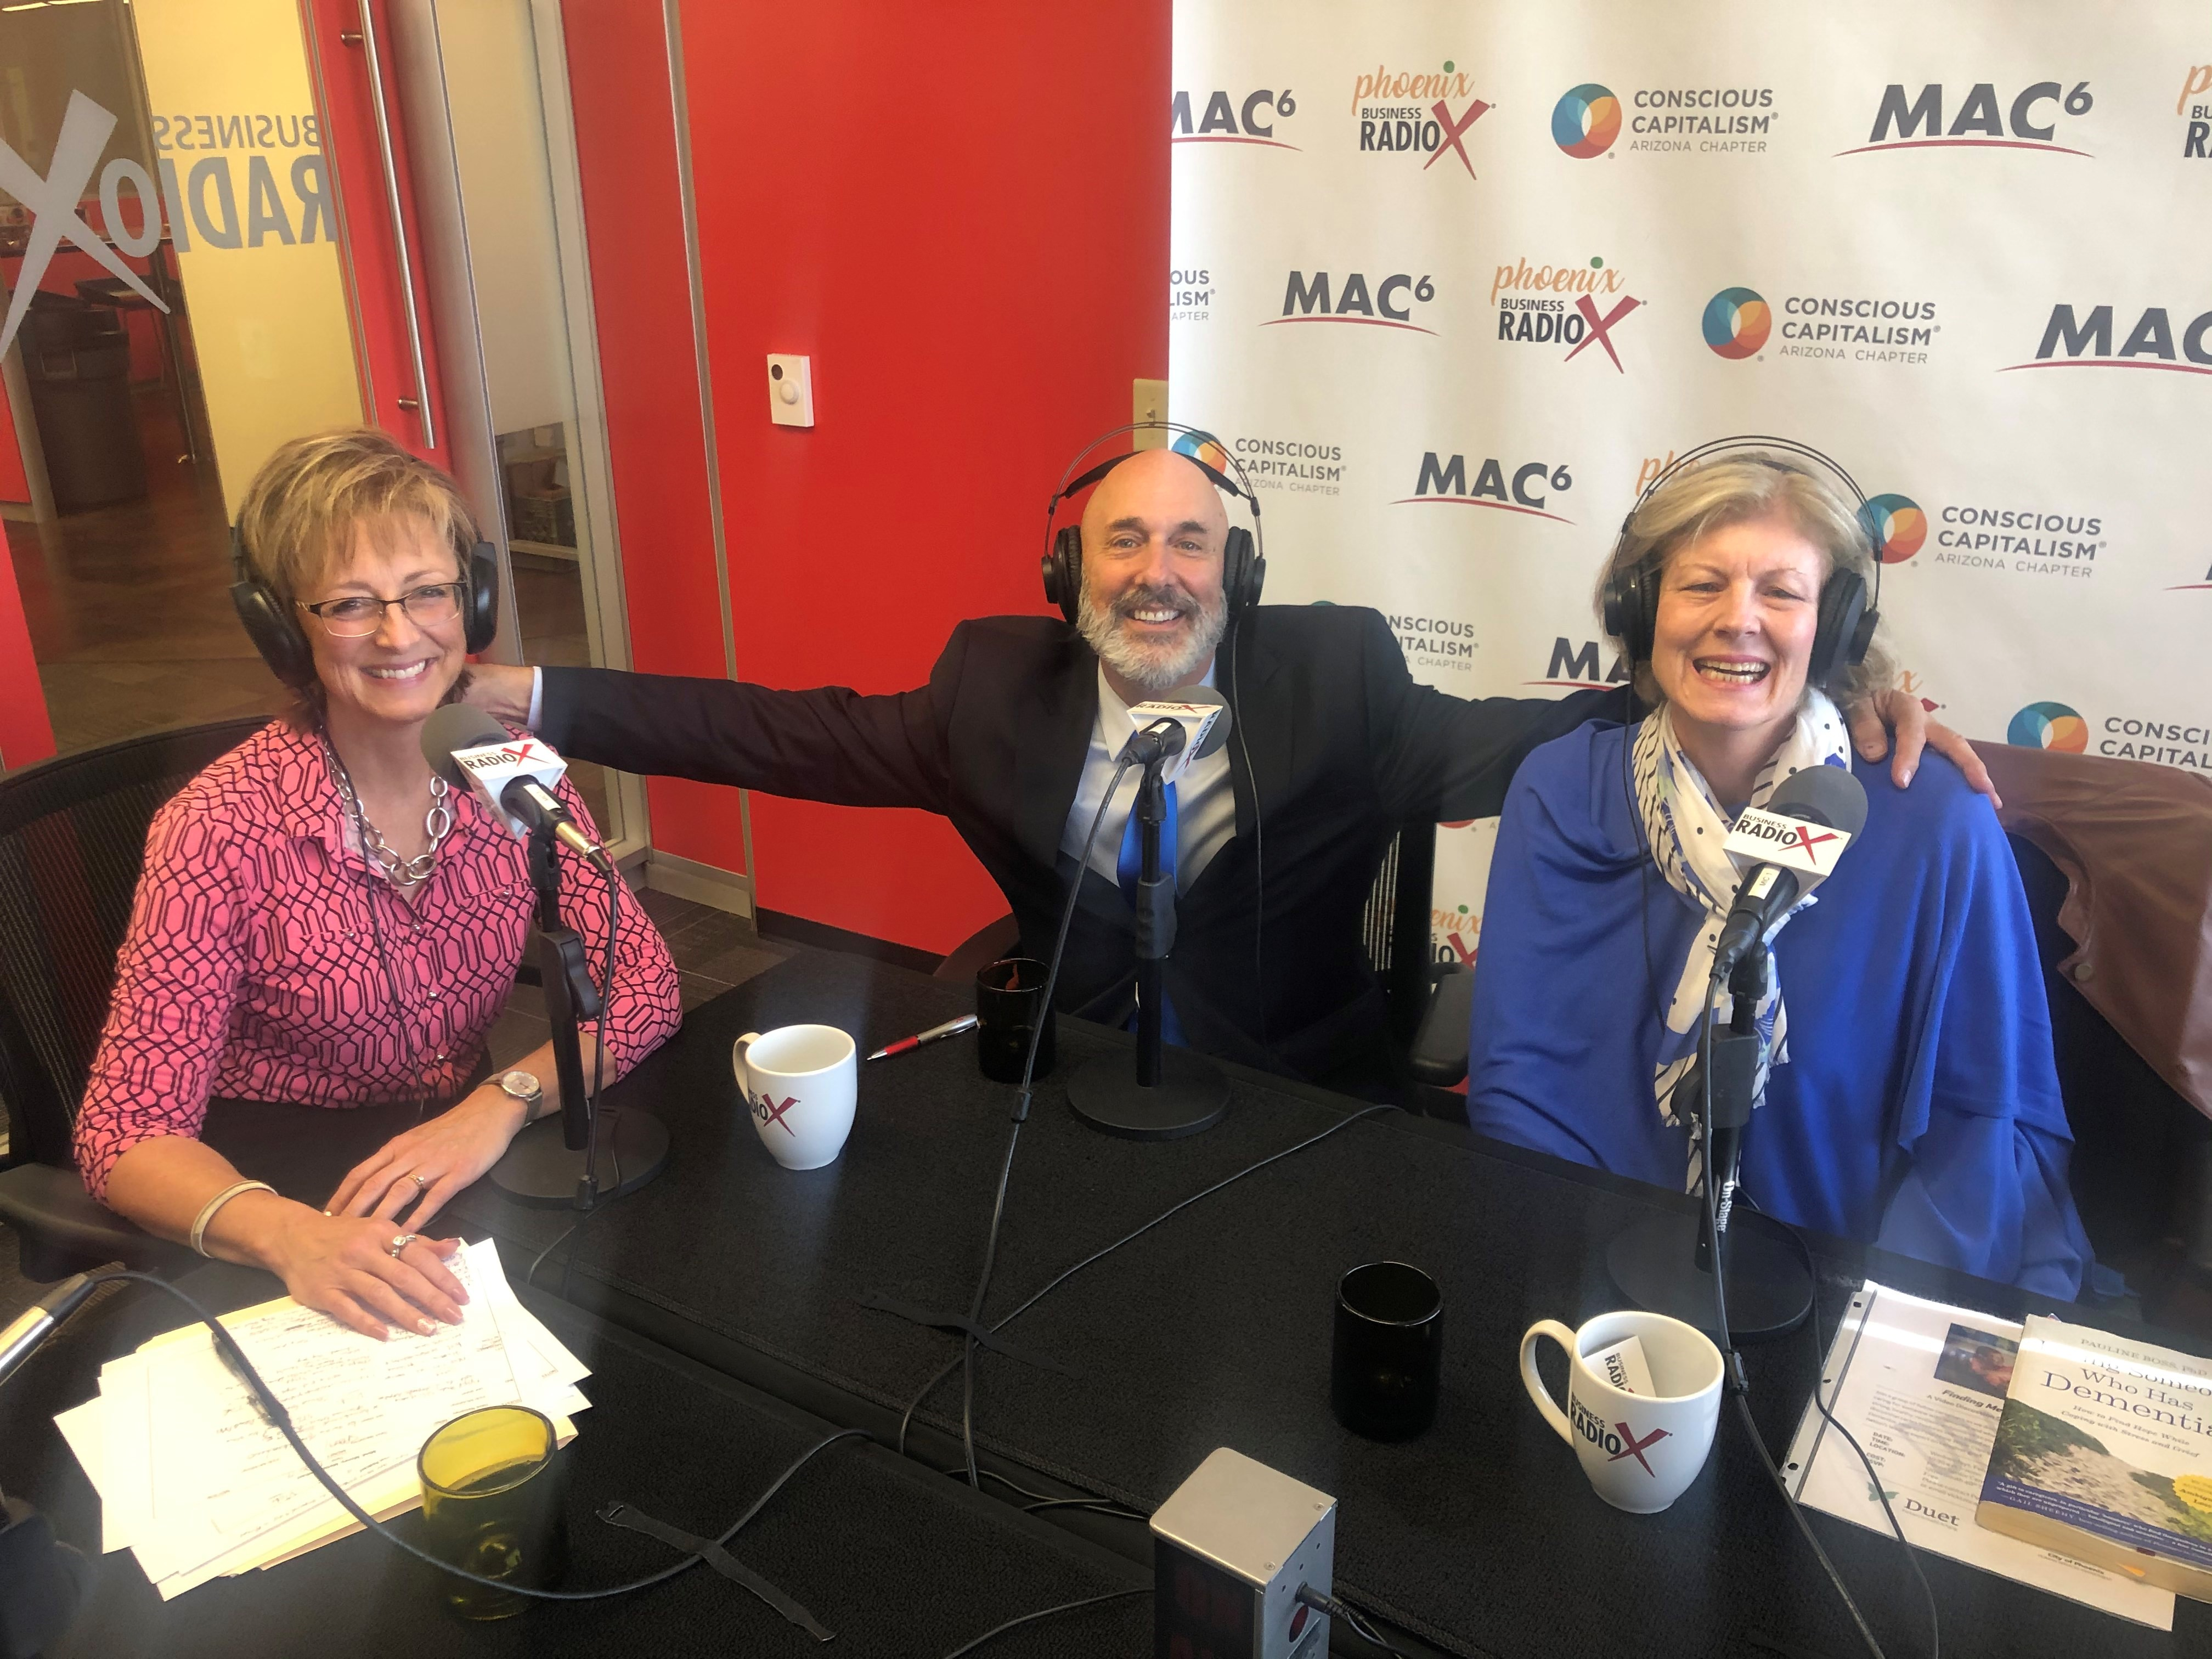 MMM Podcast Dave Nassaney with The Caregiver's Caregiver and Vicki McAllister with SAGA